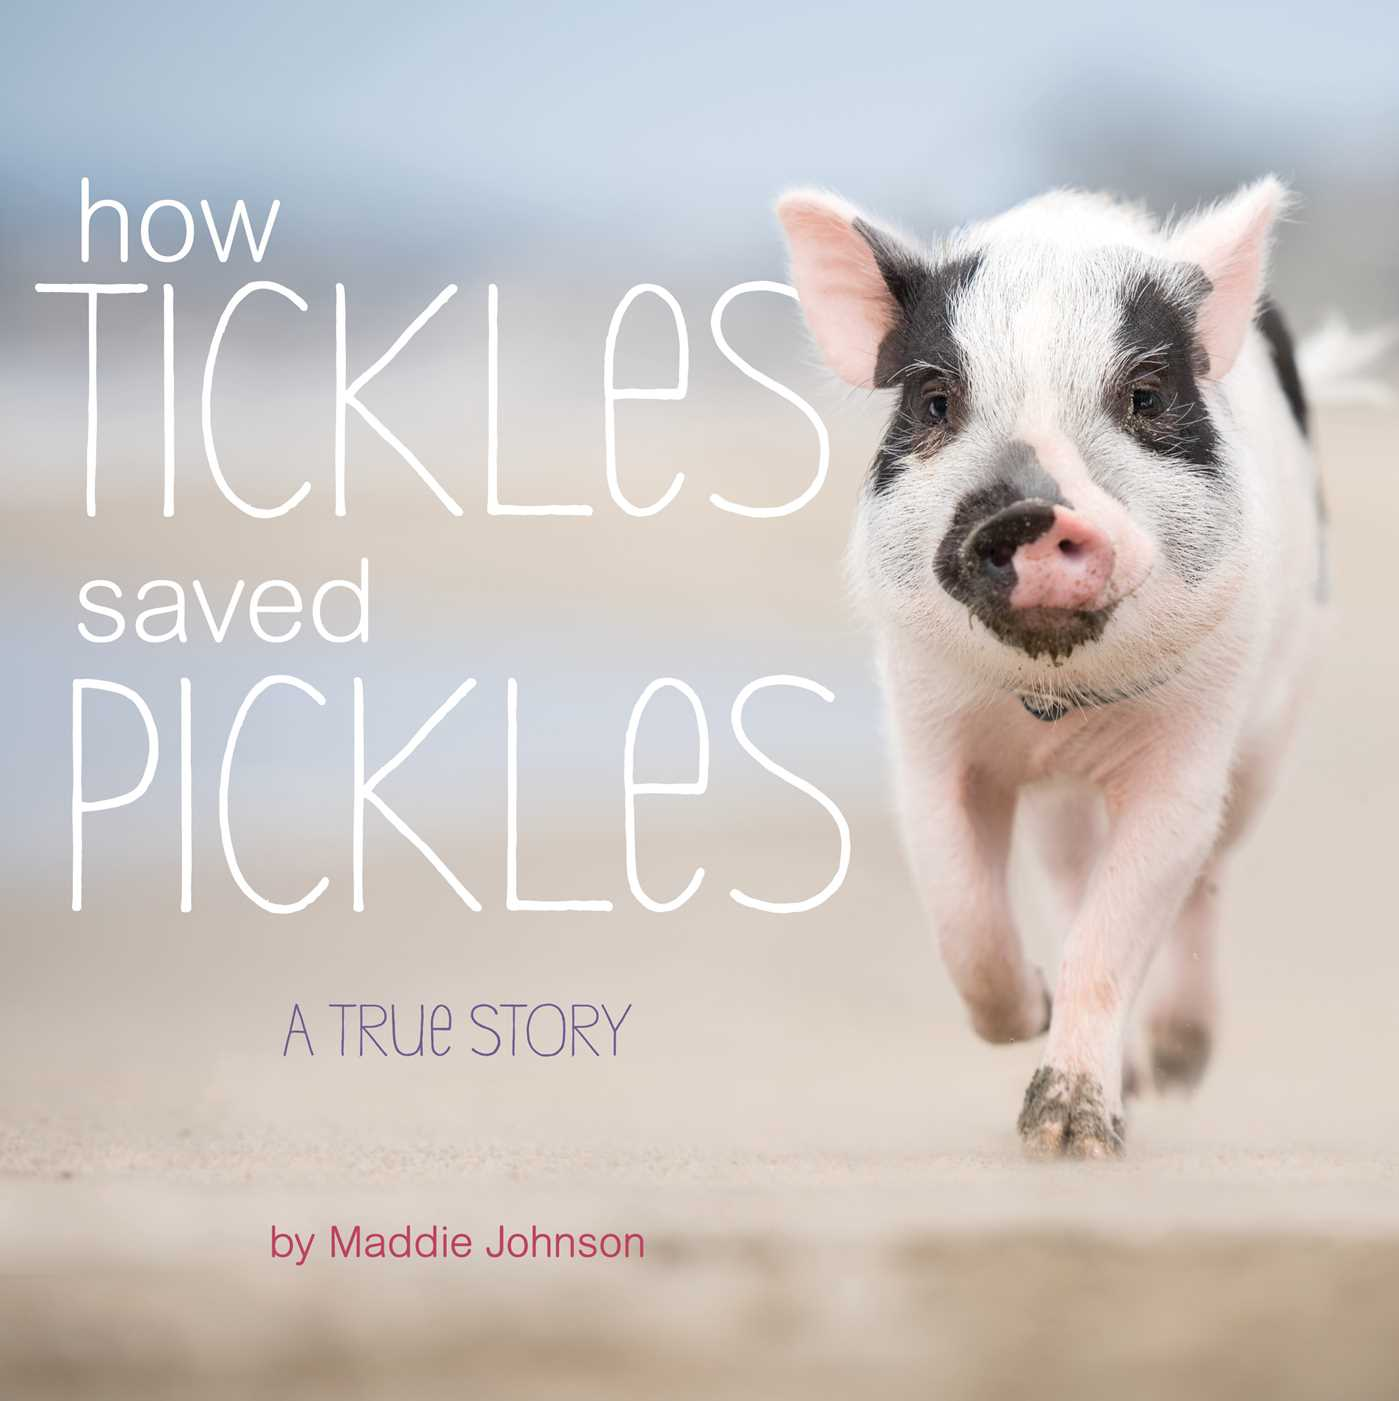 How Tickles Saved Pickles: A True Story (Hardcover)